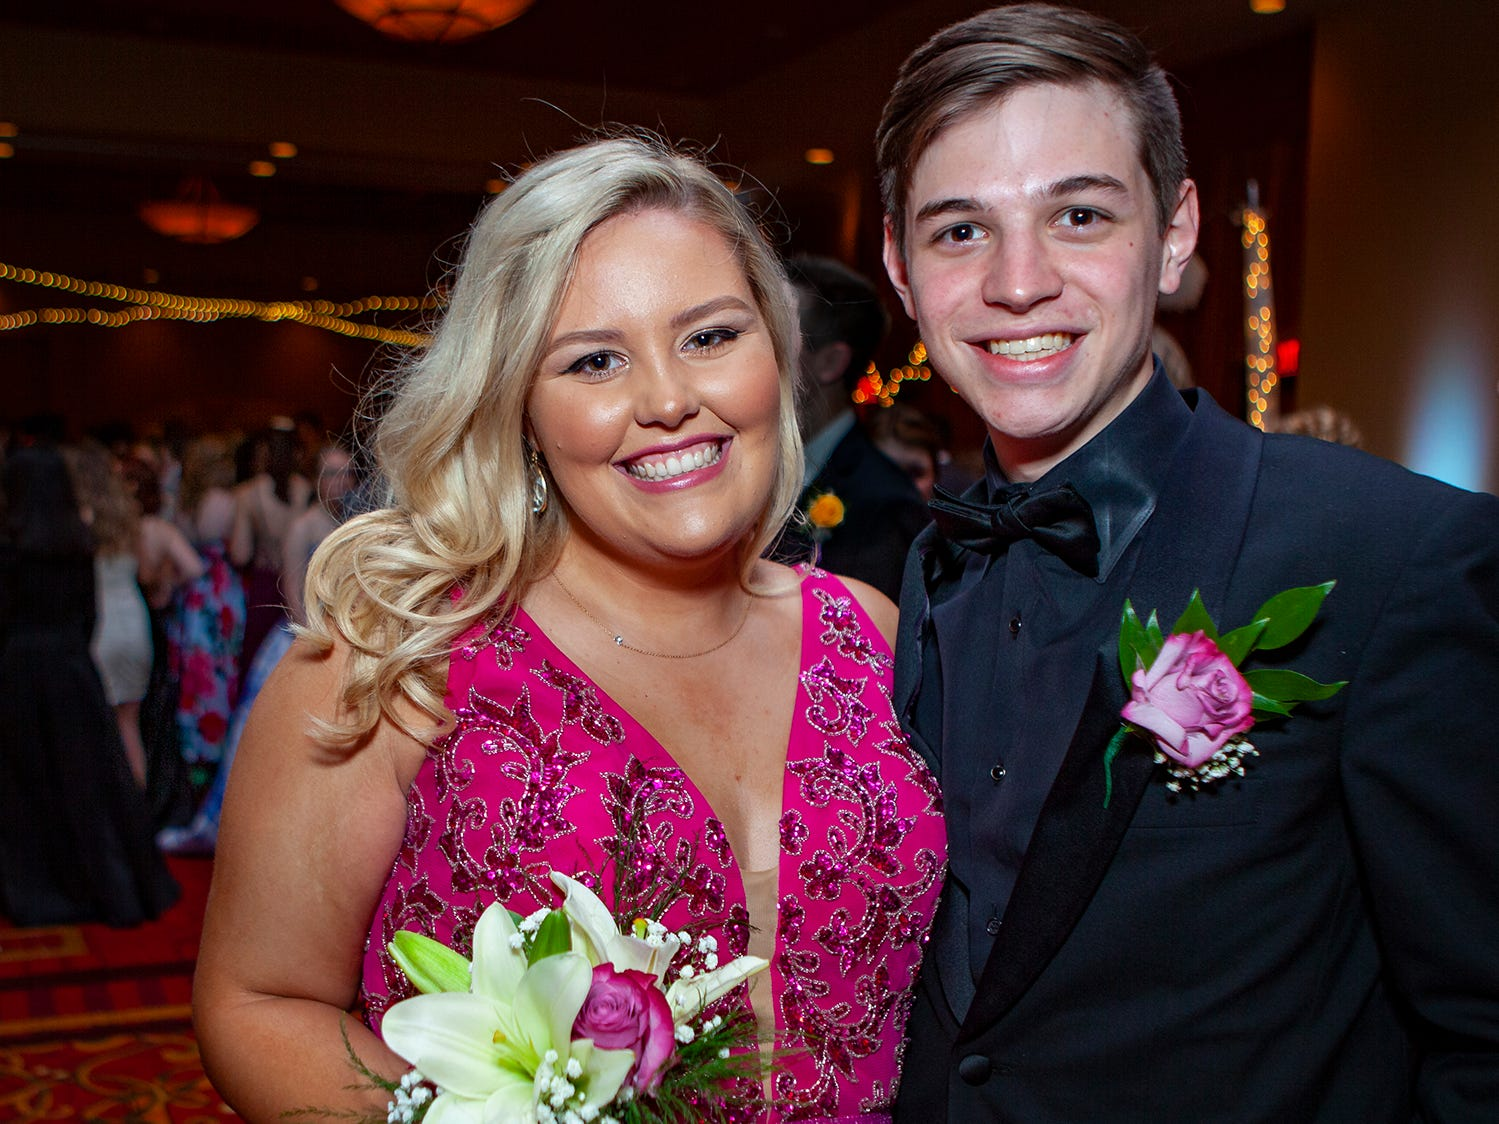 Mary Martha Wilson and Connor Smathers at Central Magnet School's prom Saturday, April 6, 2019 at Embassy Suites in Murfreesboro.